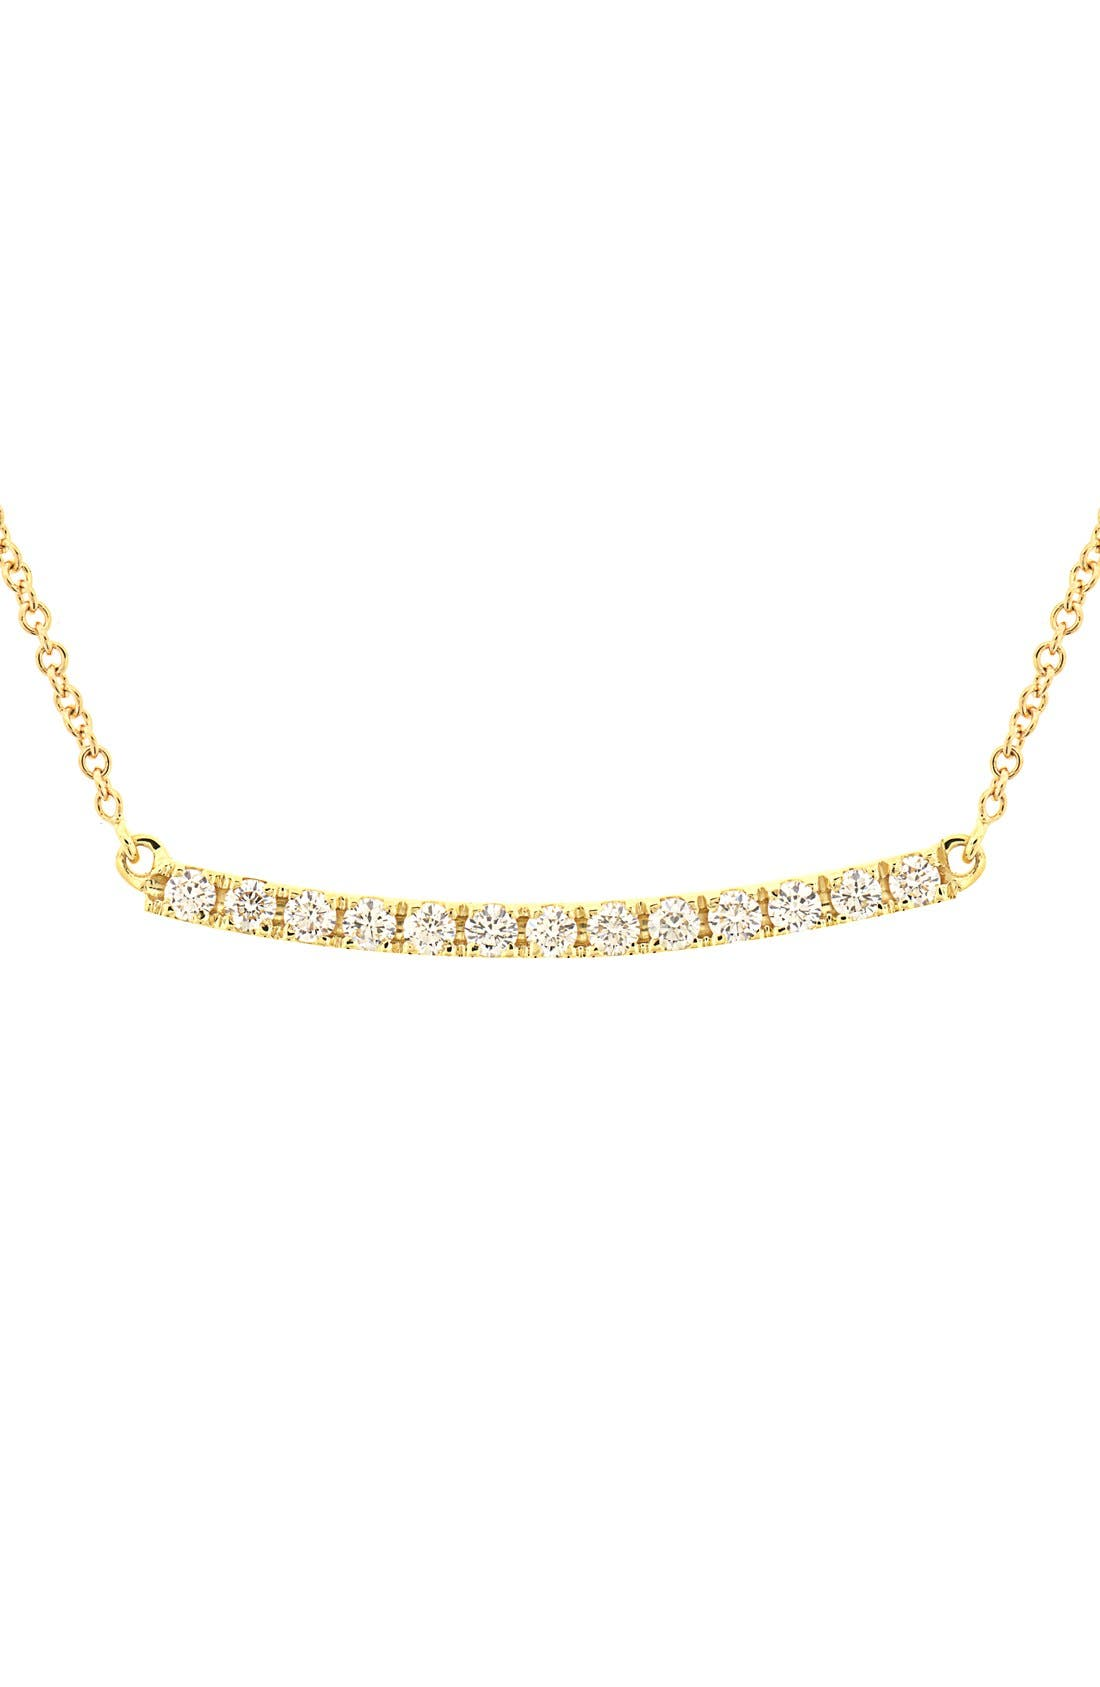 Main Image - Bony Levy 'Stick' Pavé Diamond Bar Necklace (Nordstrom Exclusive)